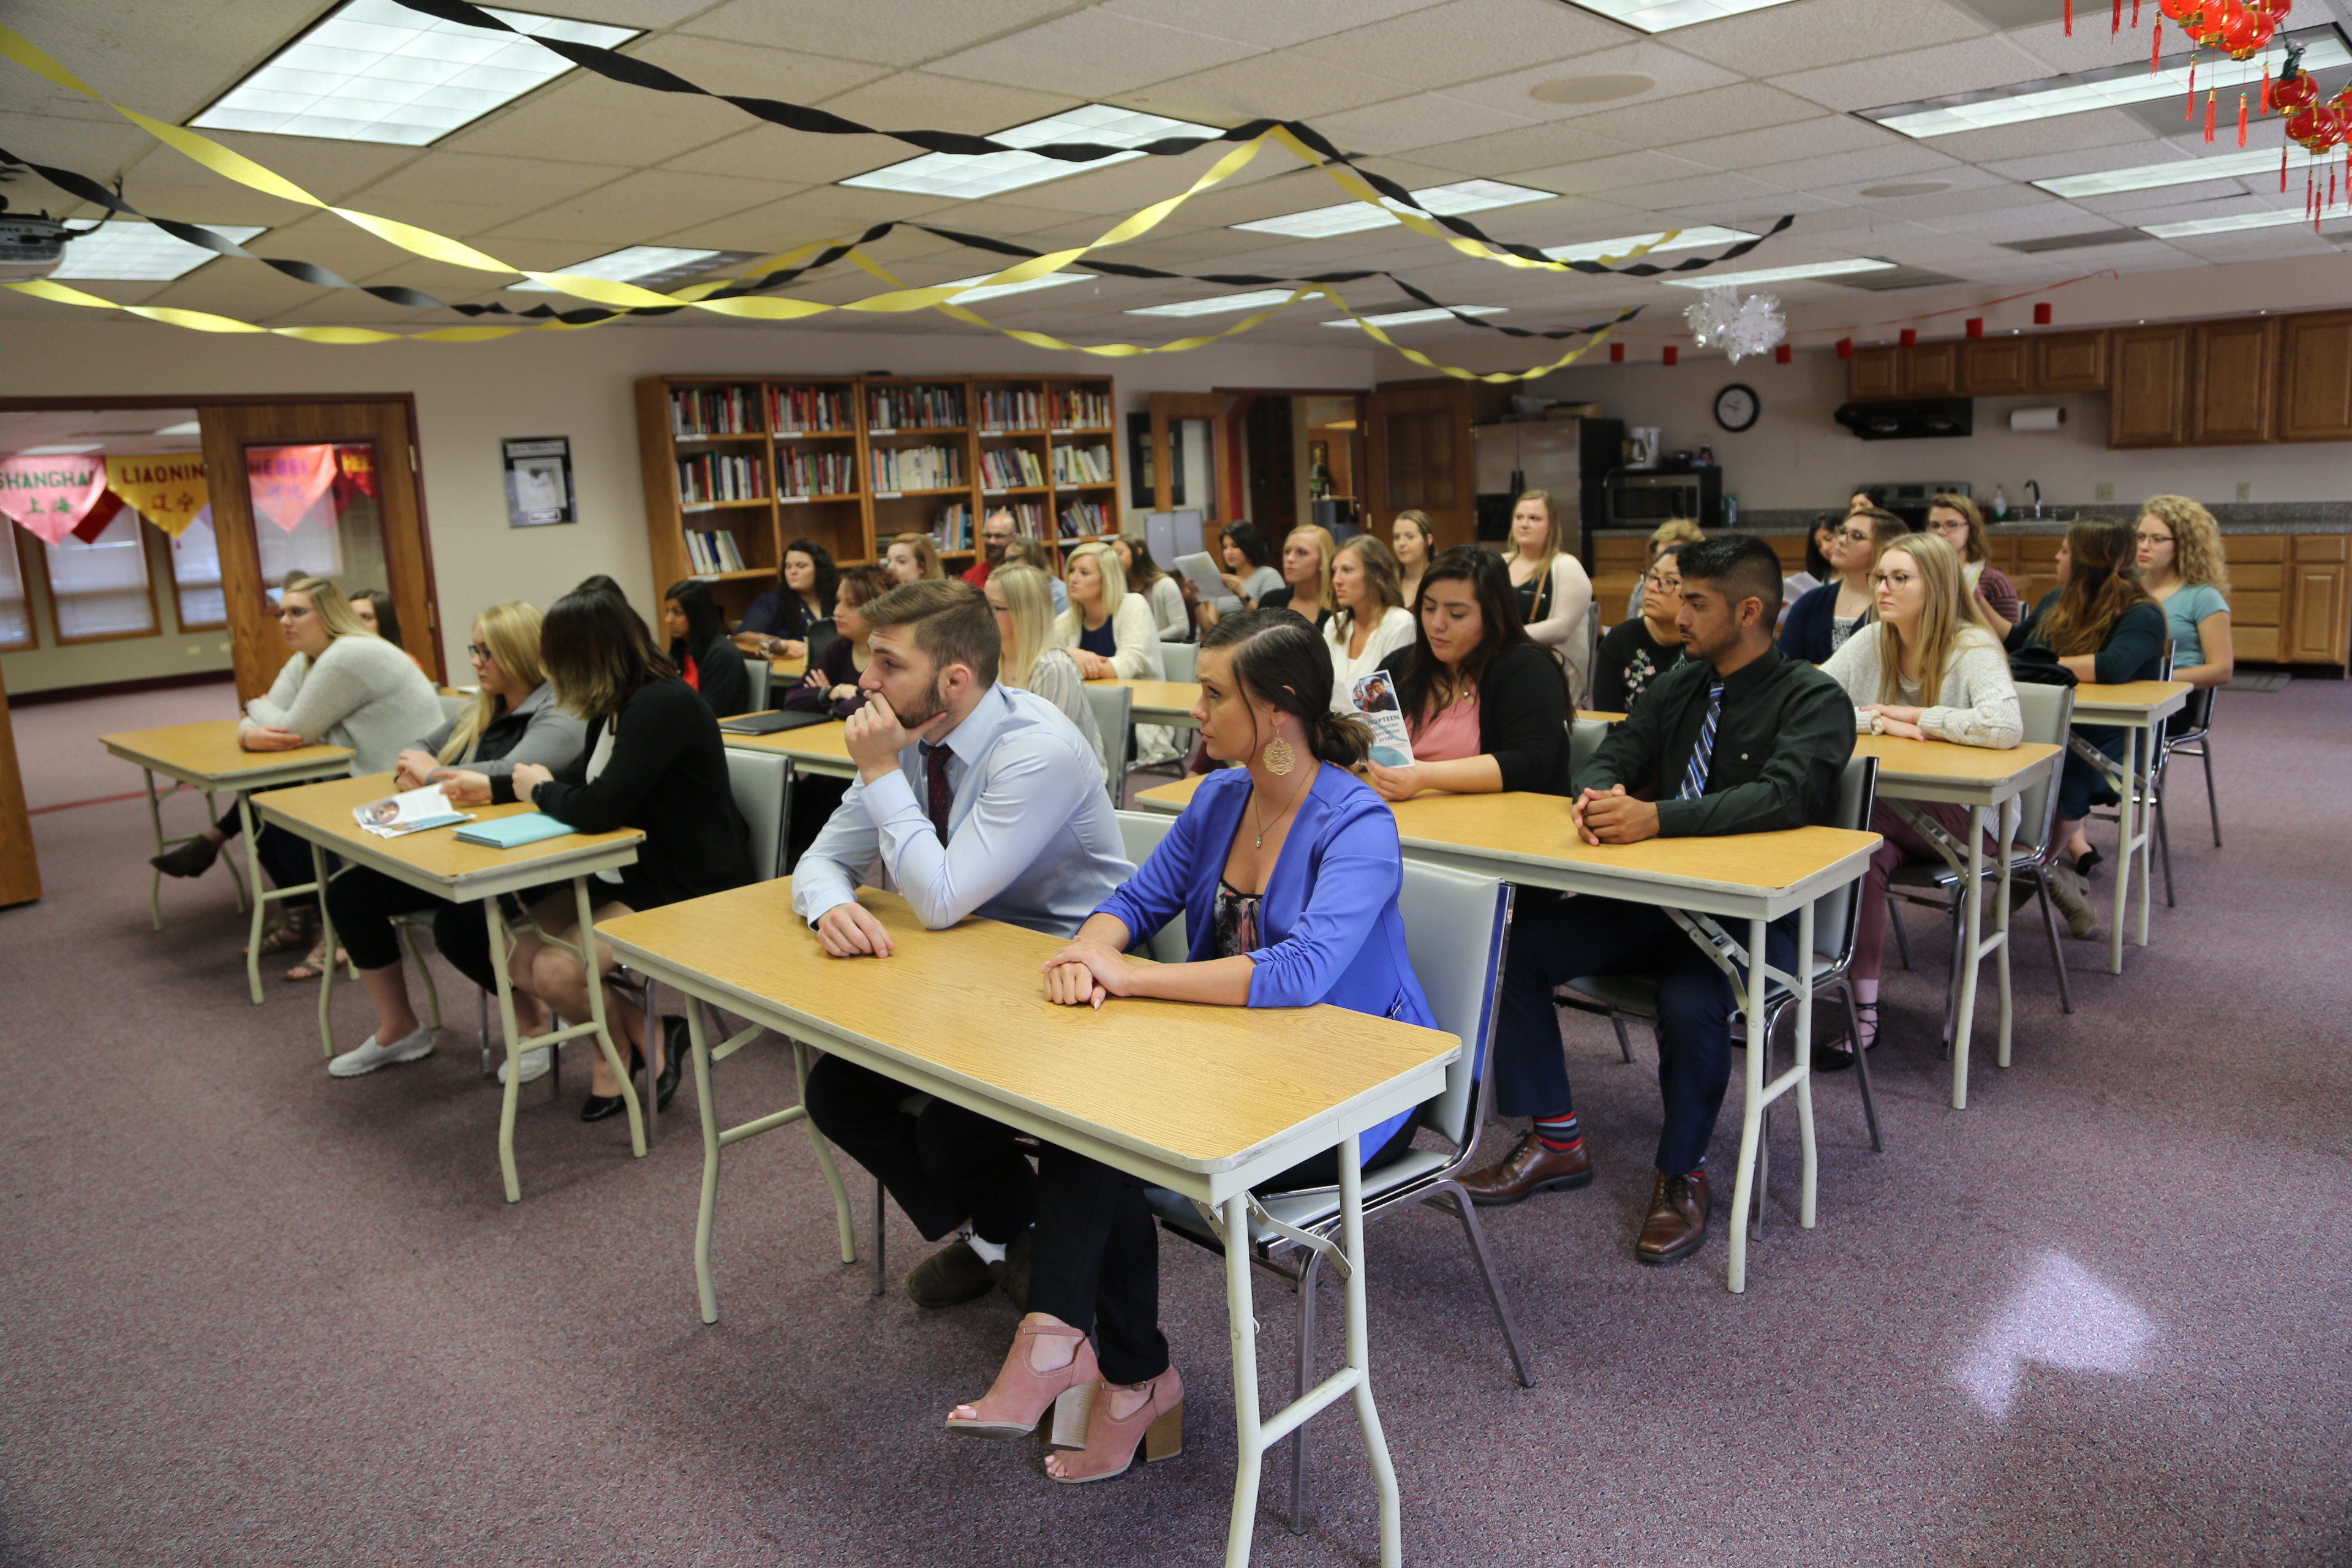 University of Nebraska students learn about careers in adoption